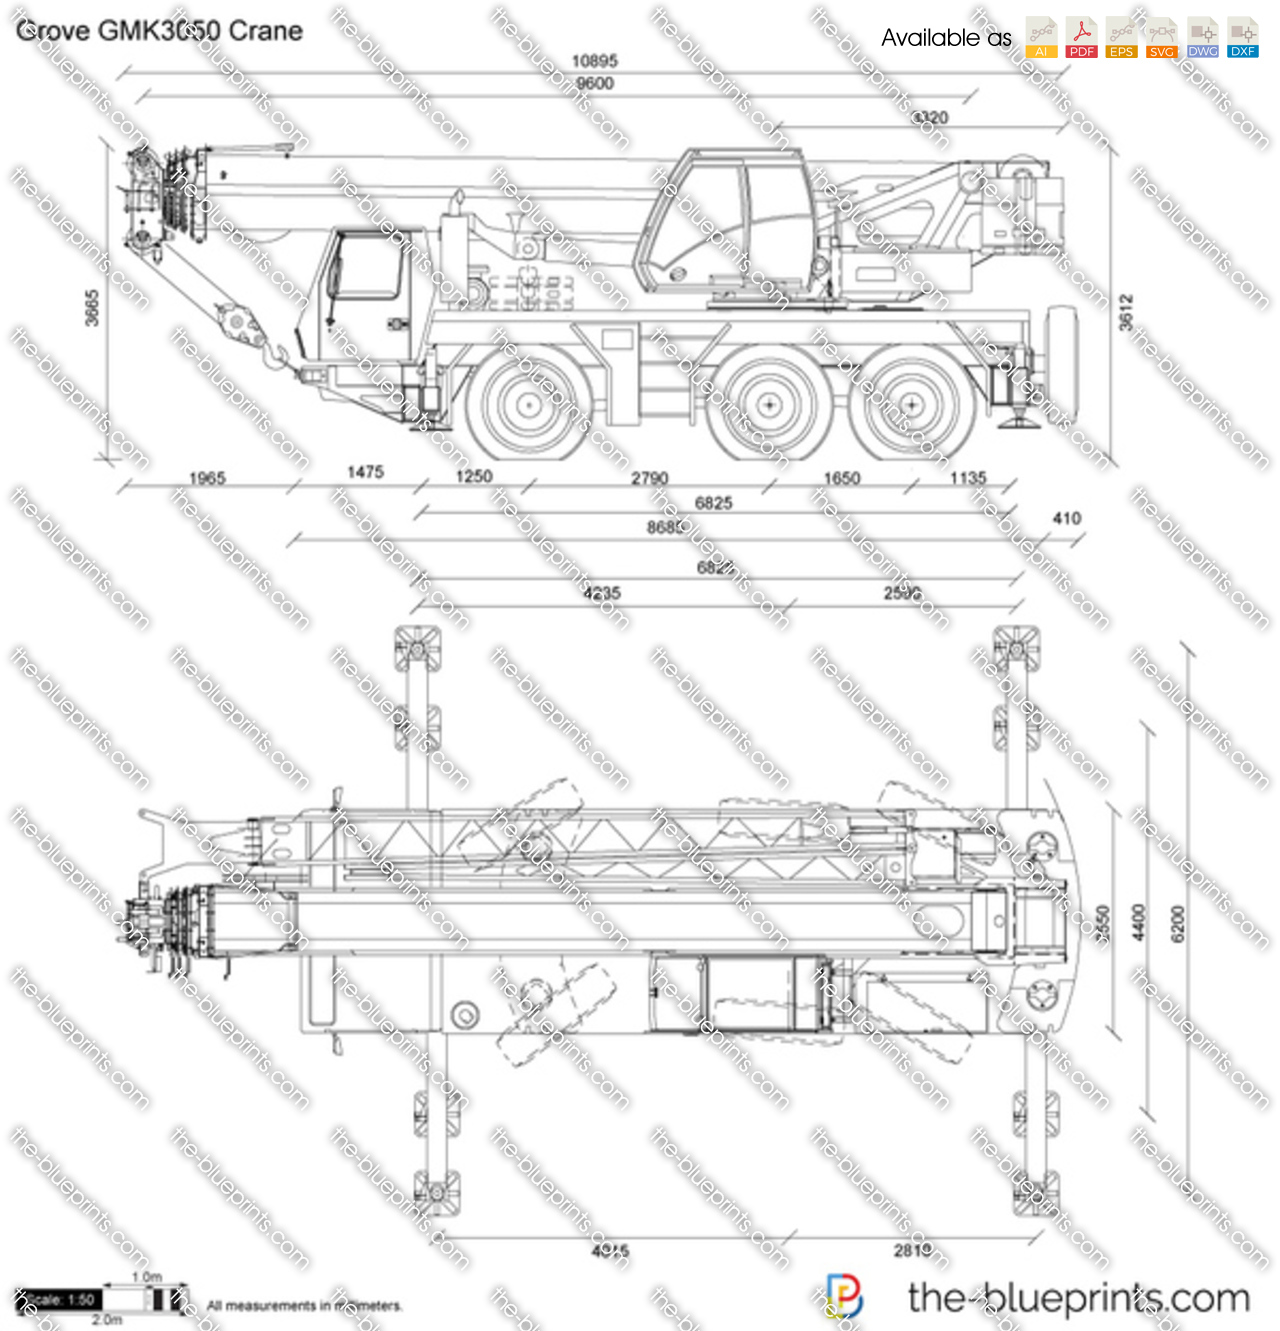 Grove Gmk3050 Crane Vector Drawing Schematic